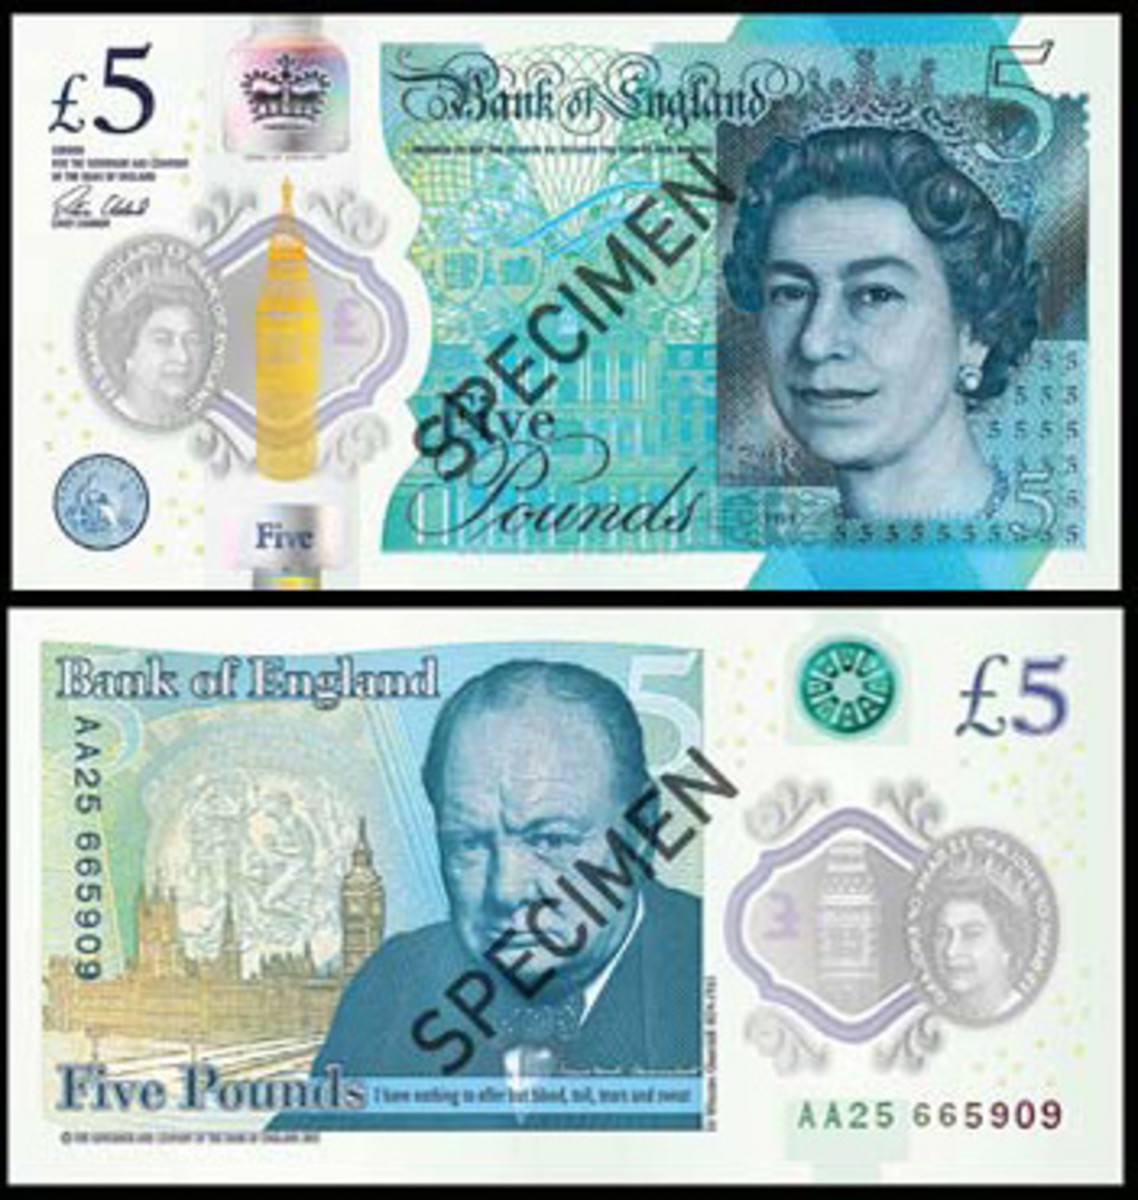 Britain's new £5 note, first issued Tuesday Sept. 13. Images courtesy & © Bank of England.